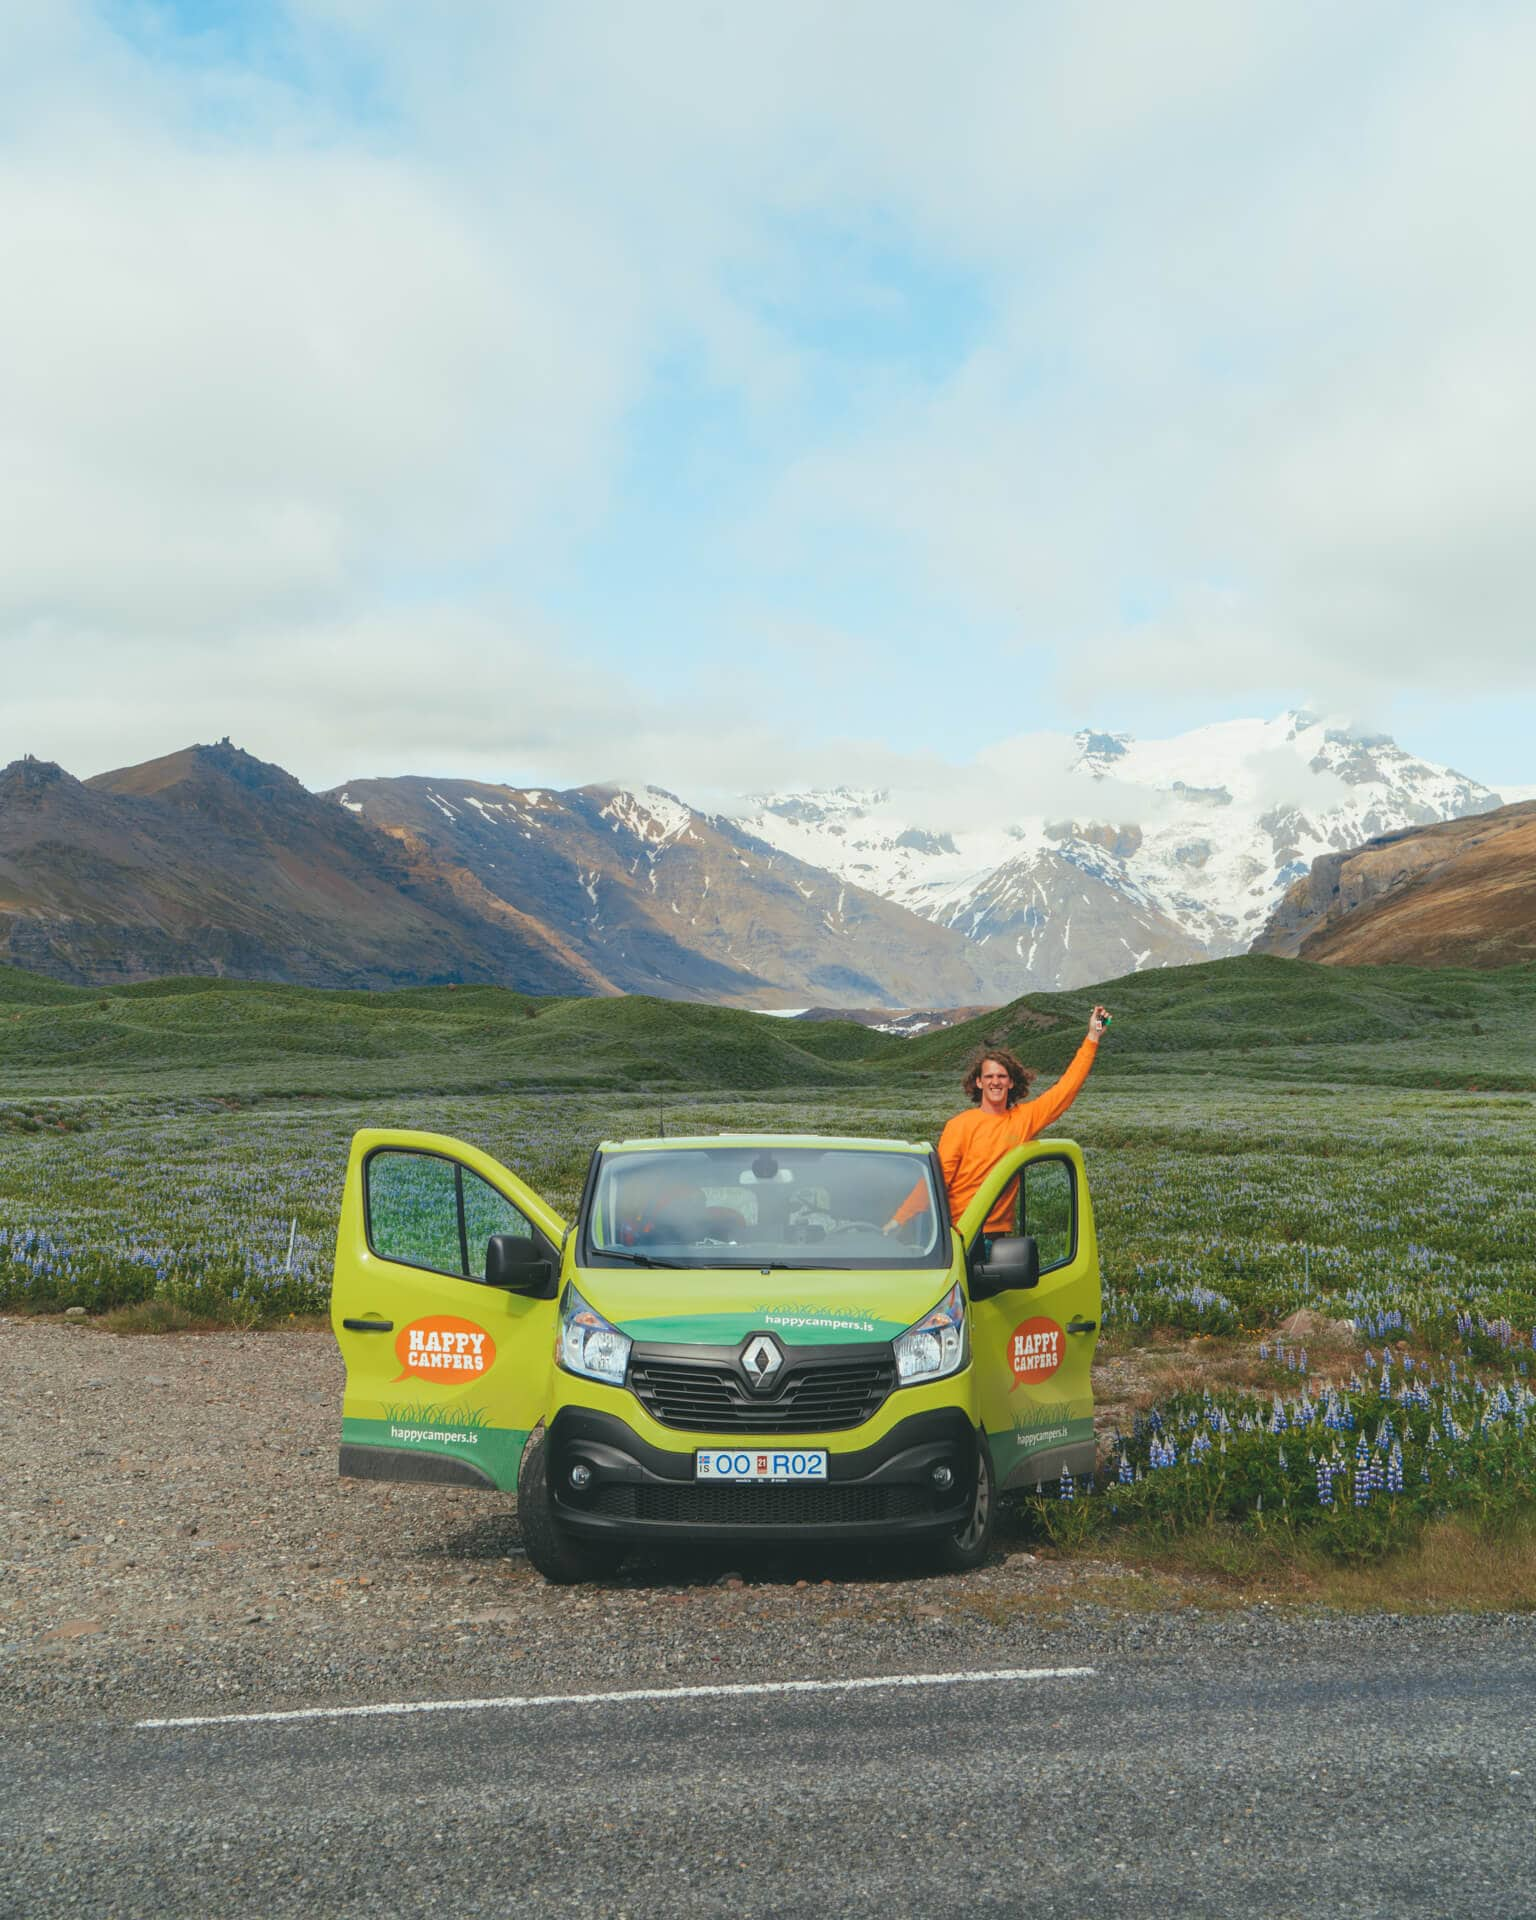 camping in iceland mountains freedom